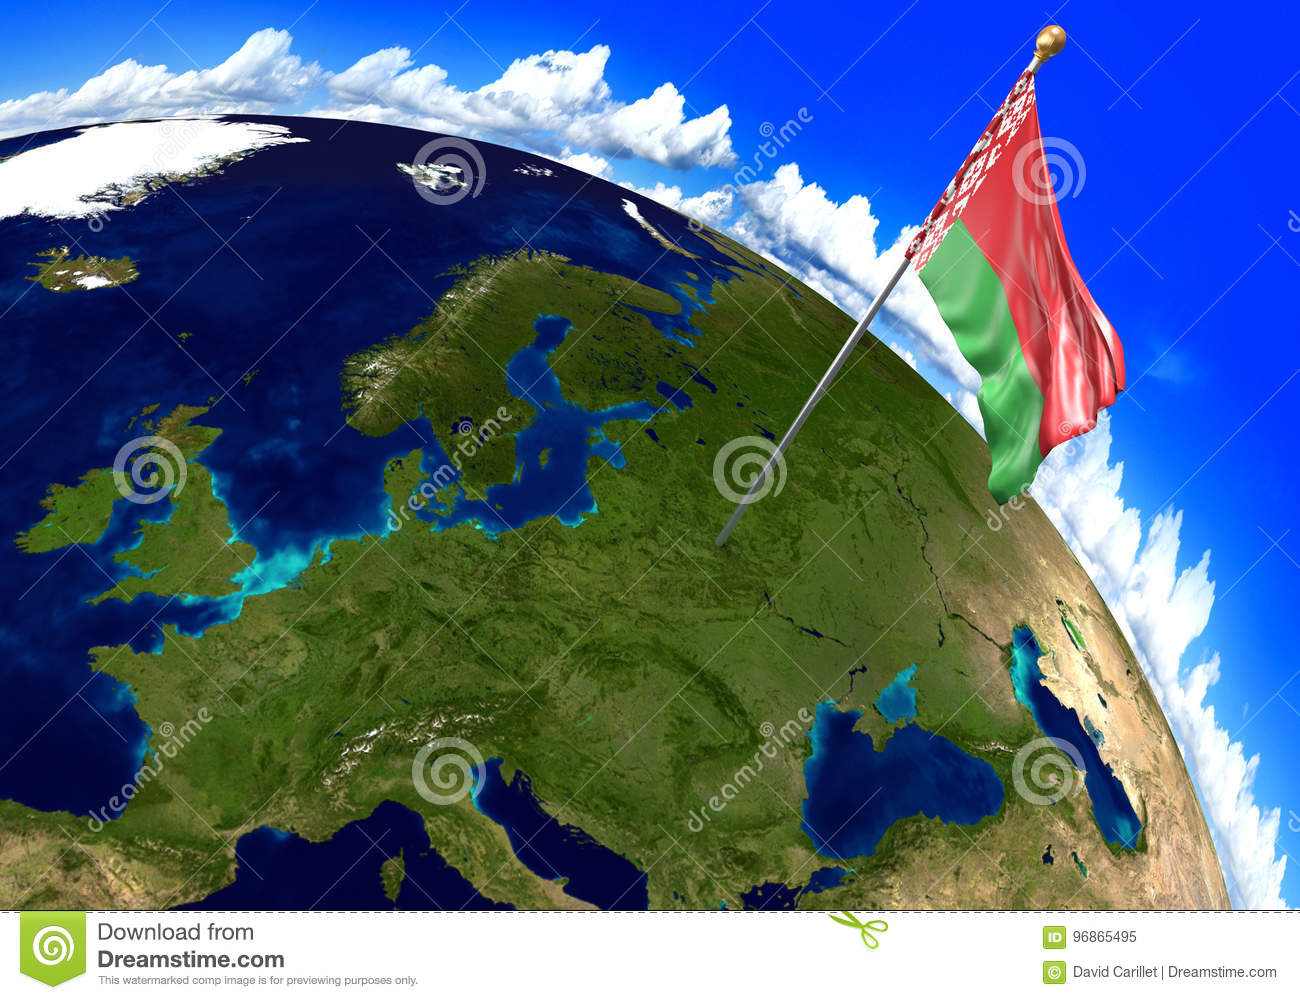 Belarus National Flag Marking The Country Location On World Map